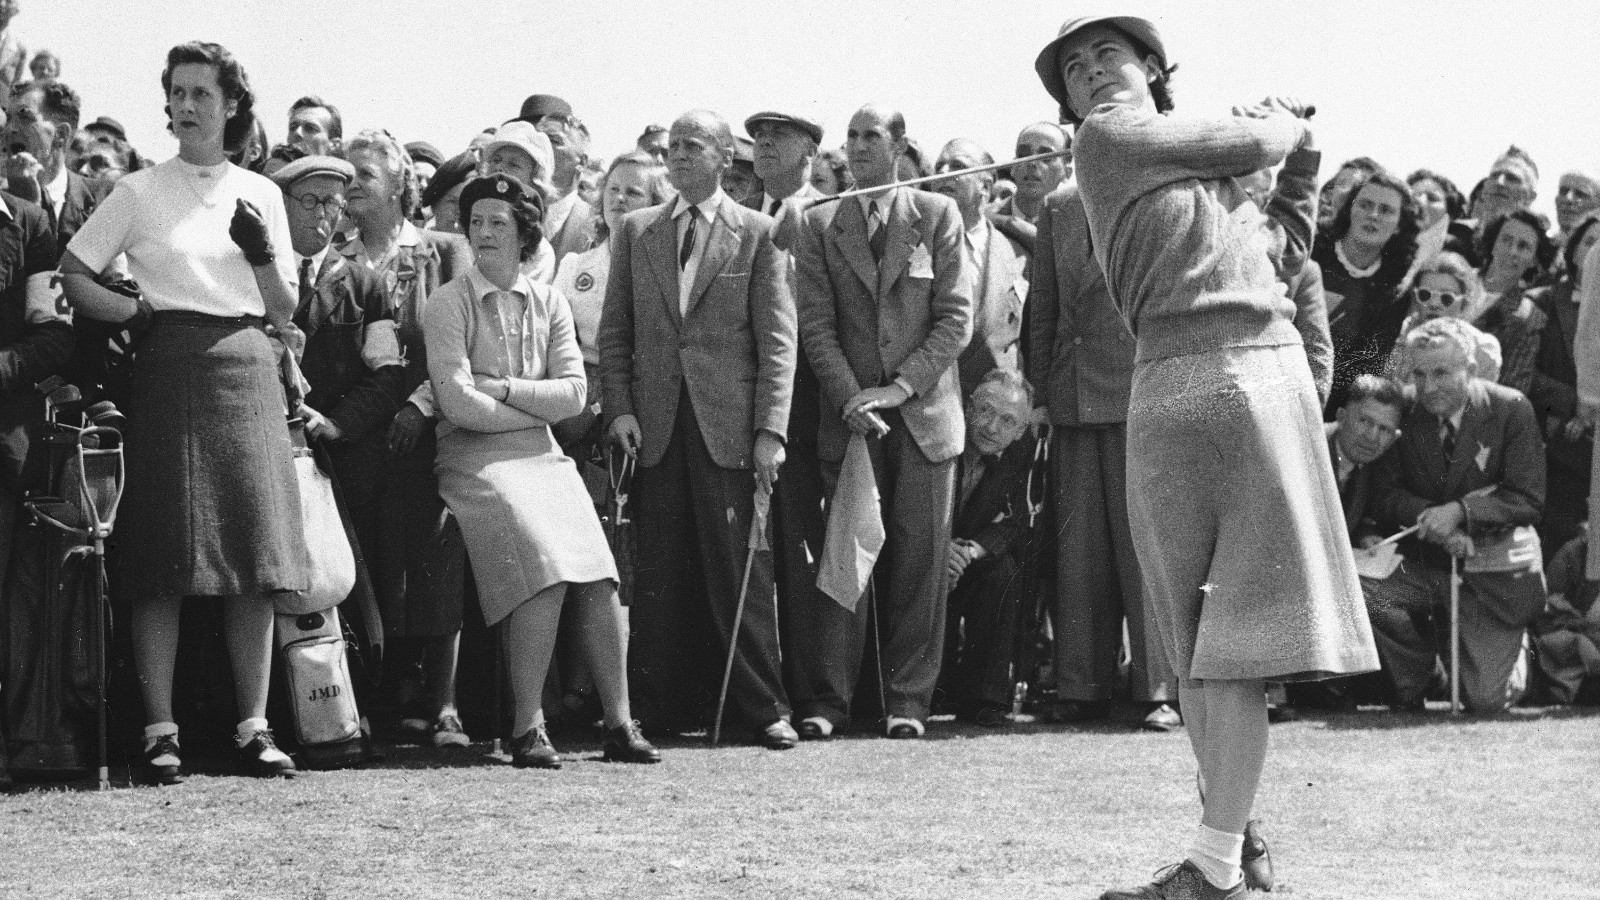 Louise Suggs of Atlanta, Ga., member of the U.S. Curtis Cup Women's golf team, drives at the first tee during the cup matches as Birkdale, England, May 21, 1948.  The U.S. team defeated the British golfers, 6 1/2 to 2 1/2.  (AP Photo)